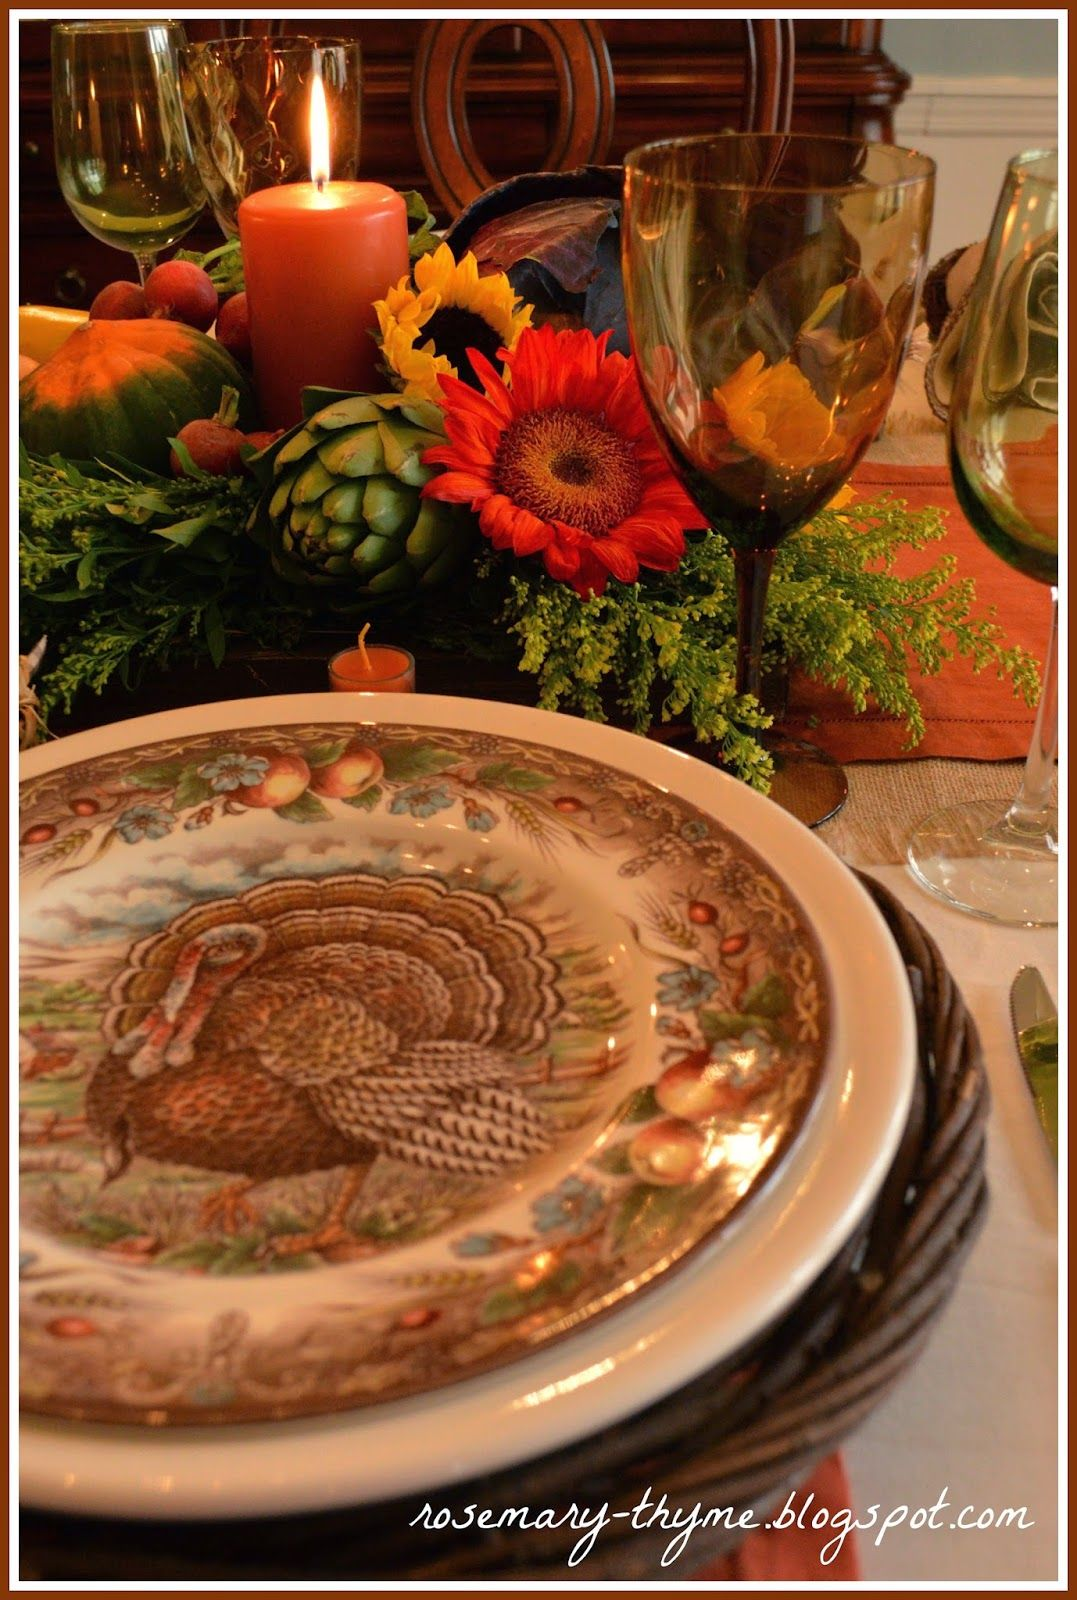 Happy Thanksgiving To You All